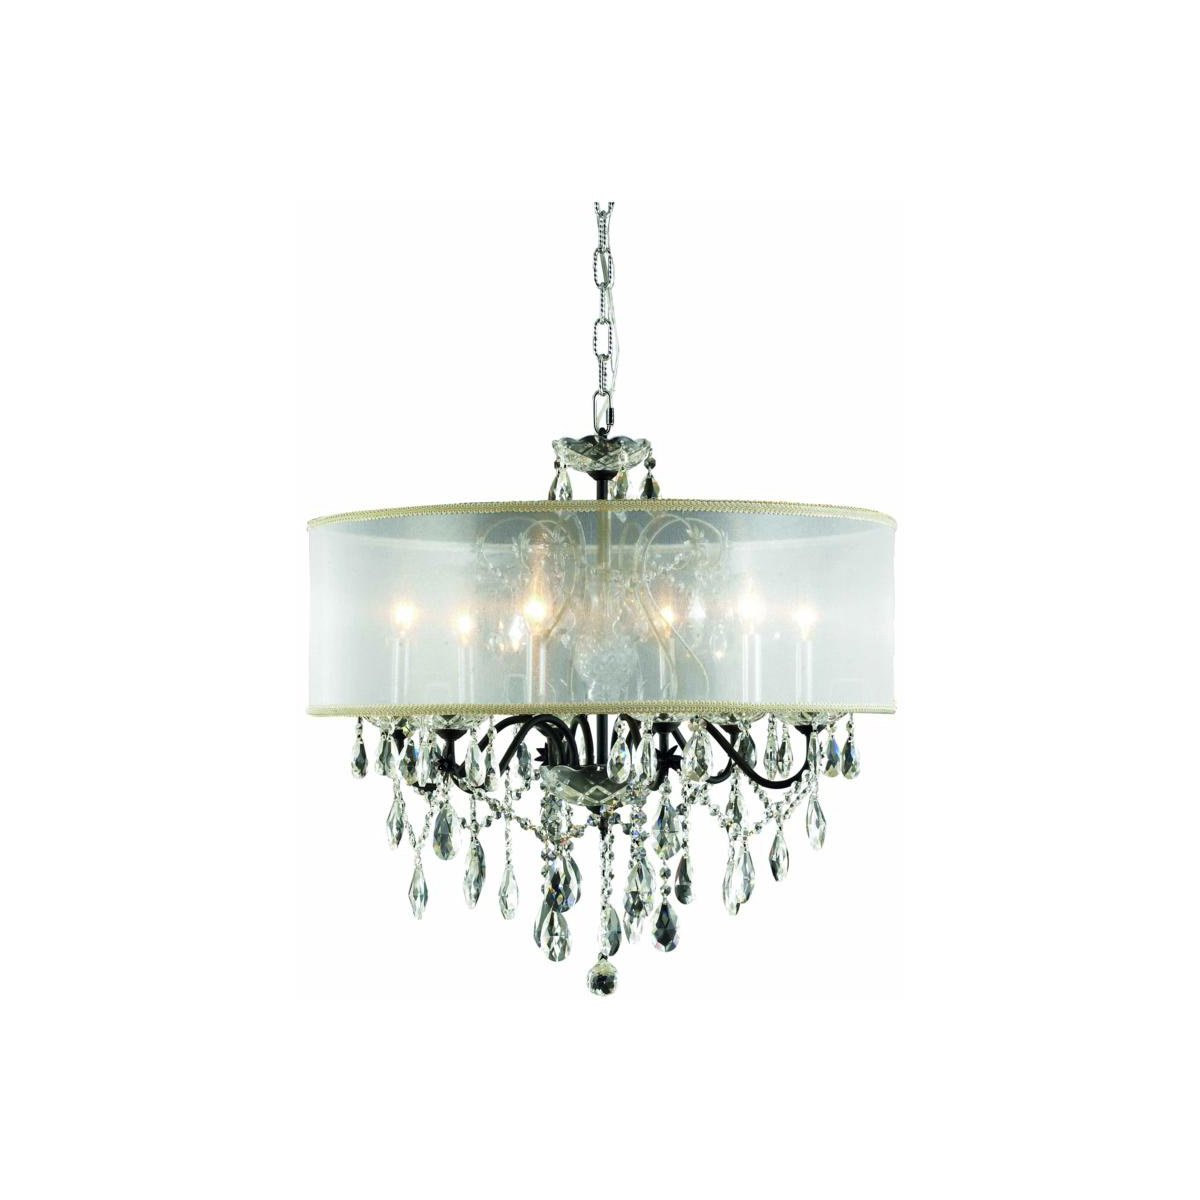 St. Francis 24 Crystal Chandelier With Silver Shade And 6 Lights - Dark Bronze Finish And Swarovski Elements Crystal Chandelier